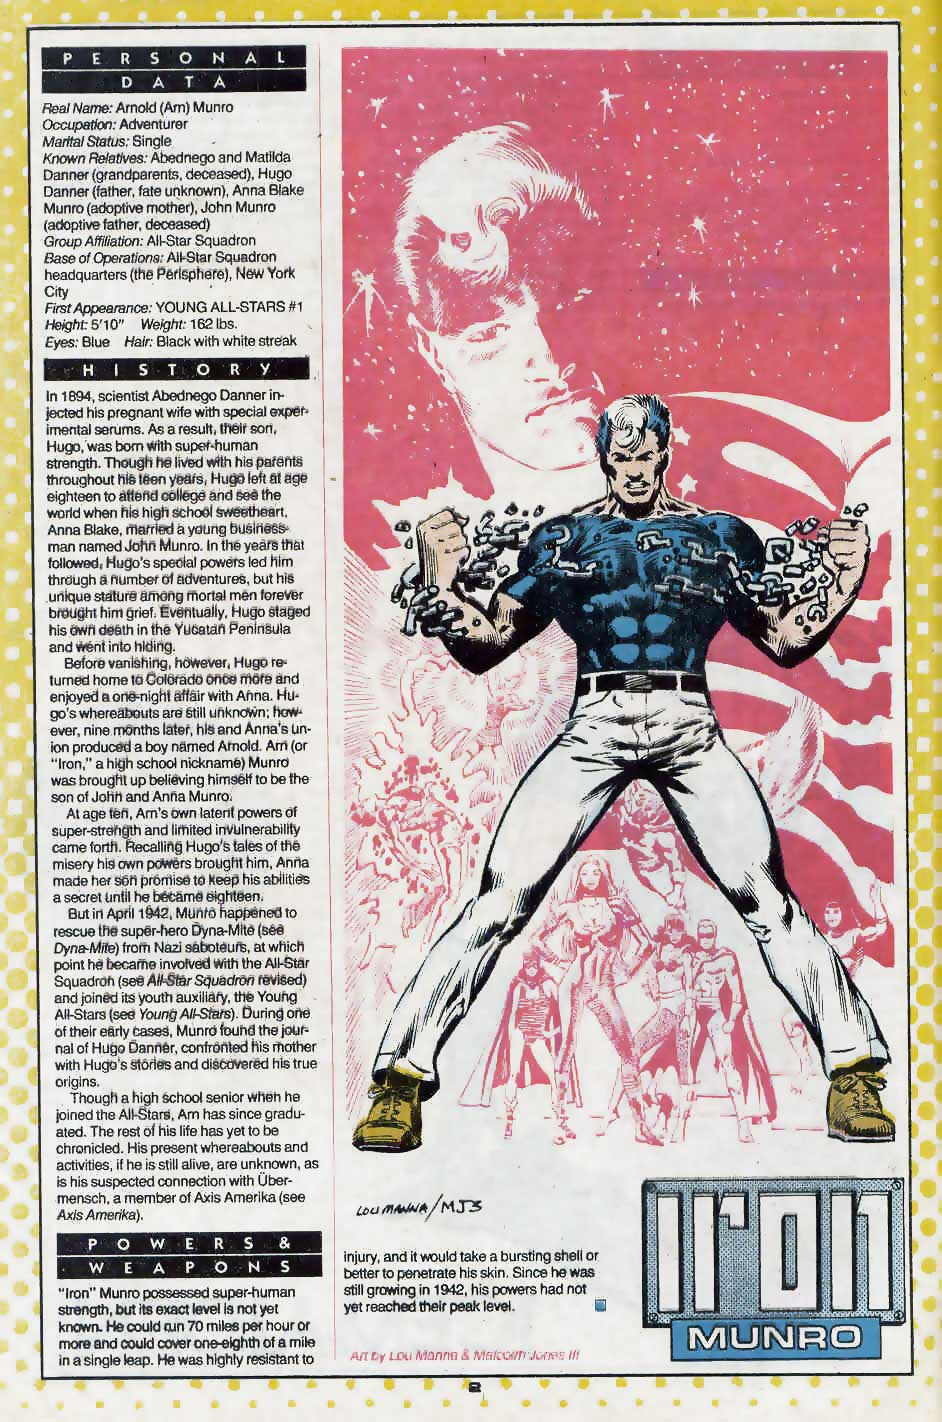 Who's Who Update 88 #2 Iron Munro by Larry Manna and Malcolm Jones III